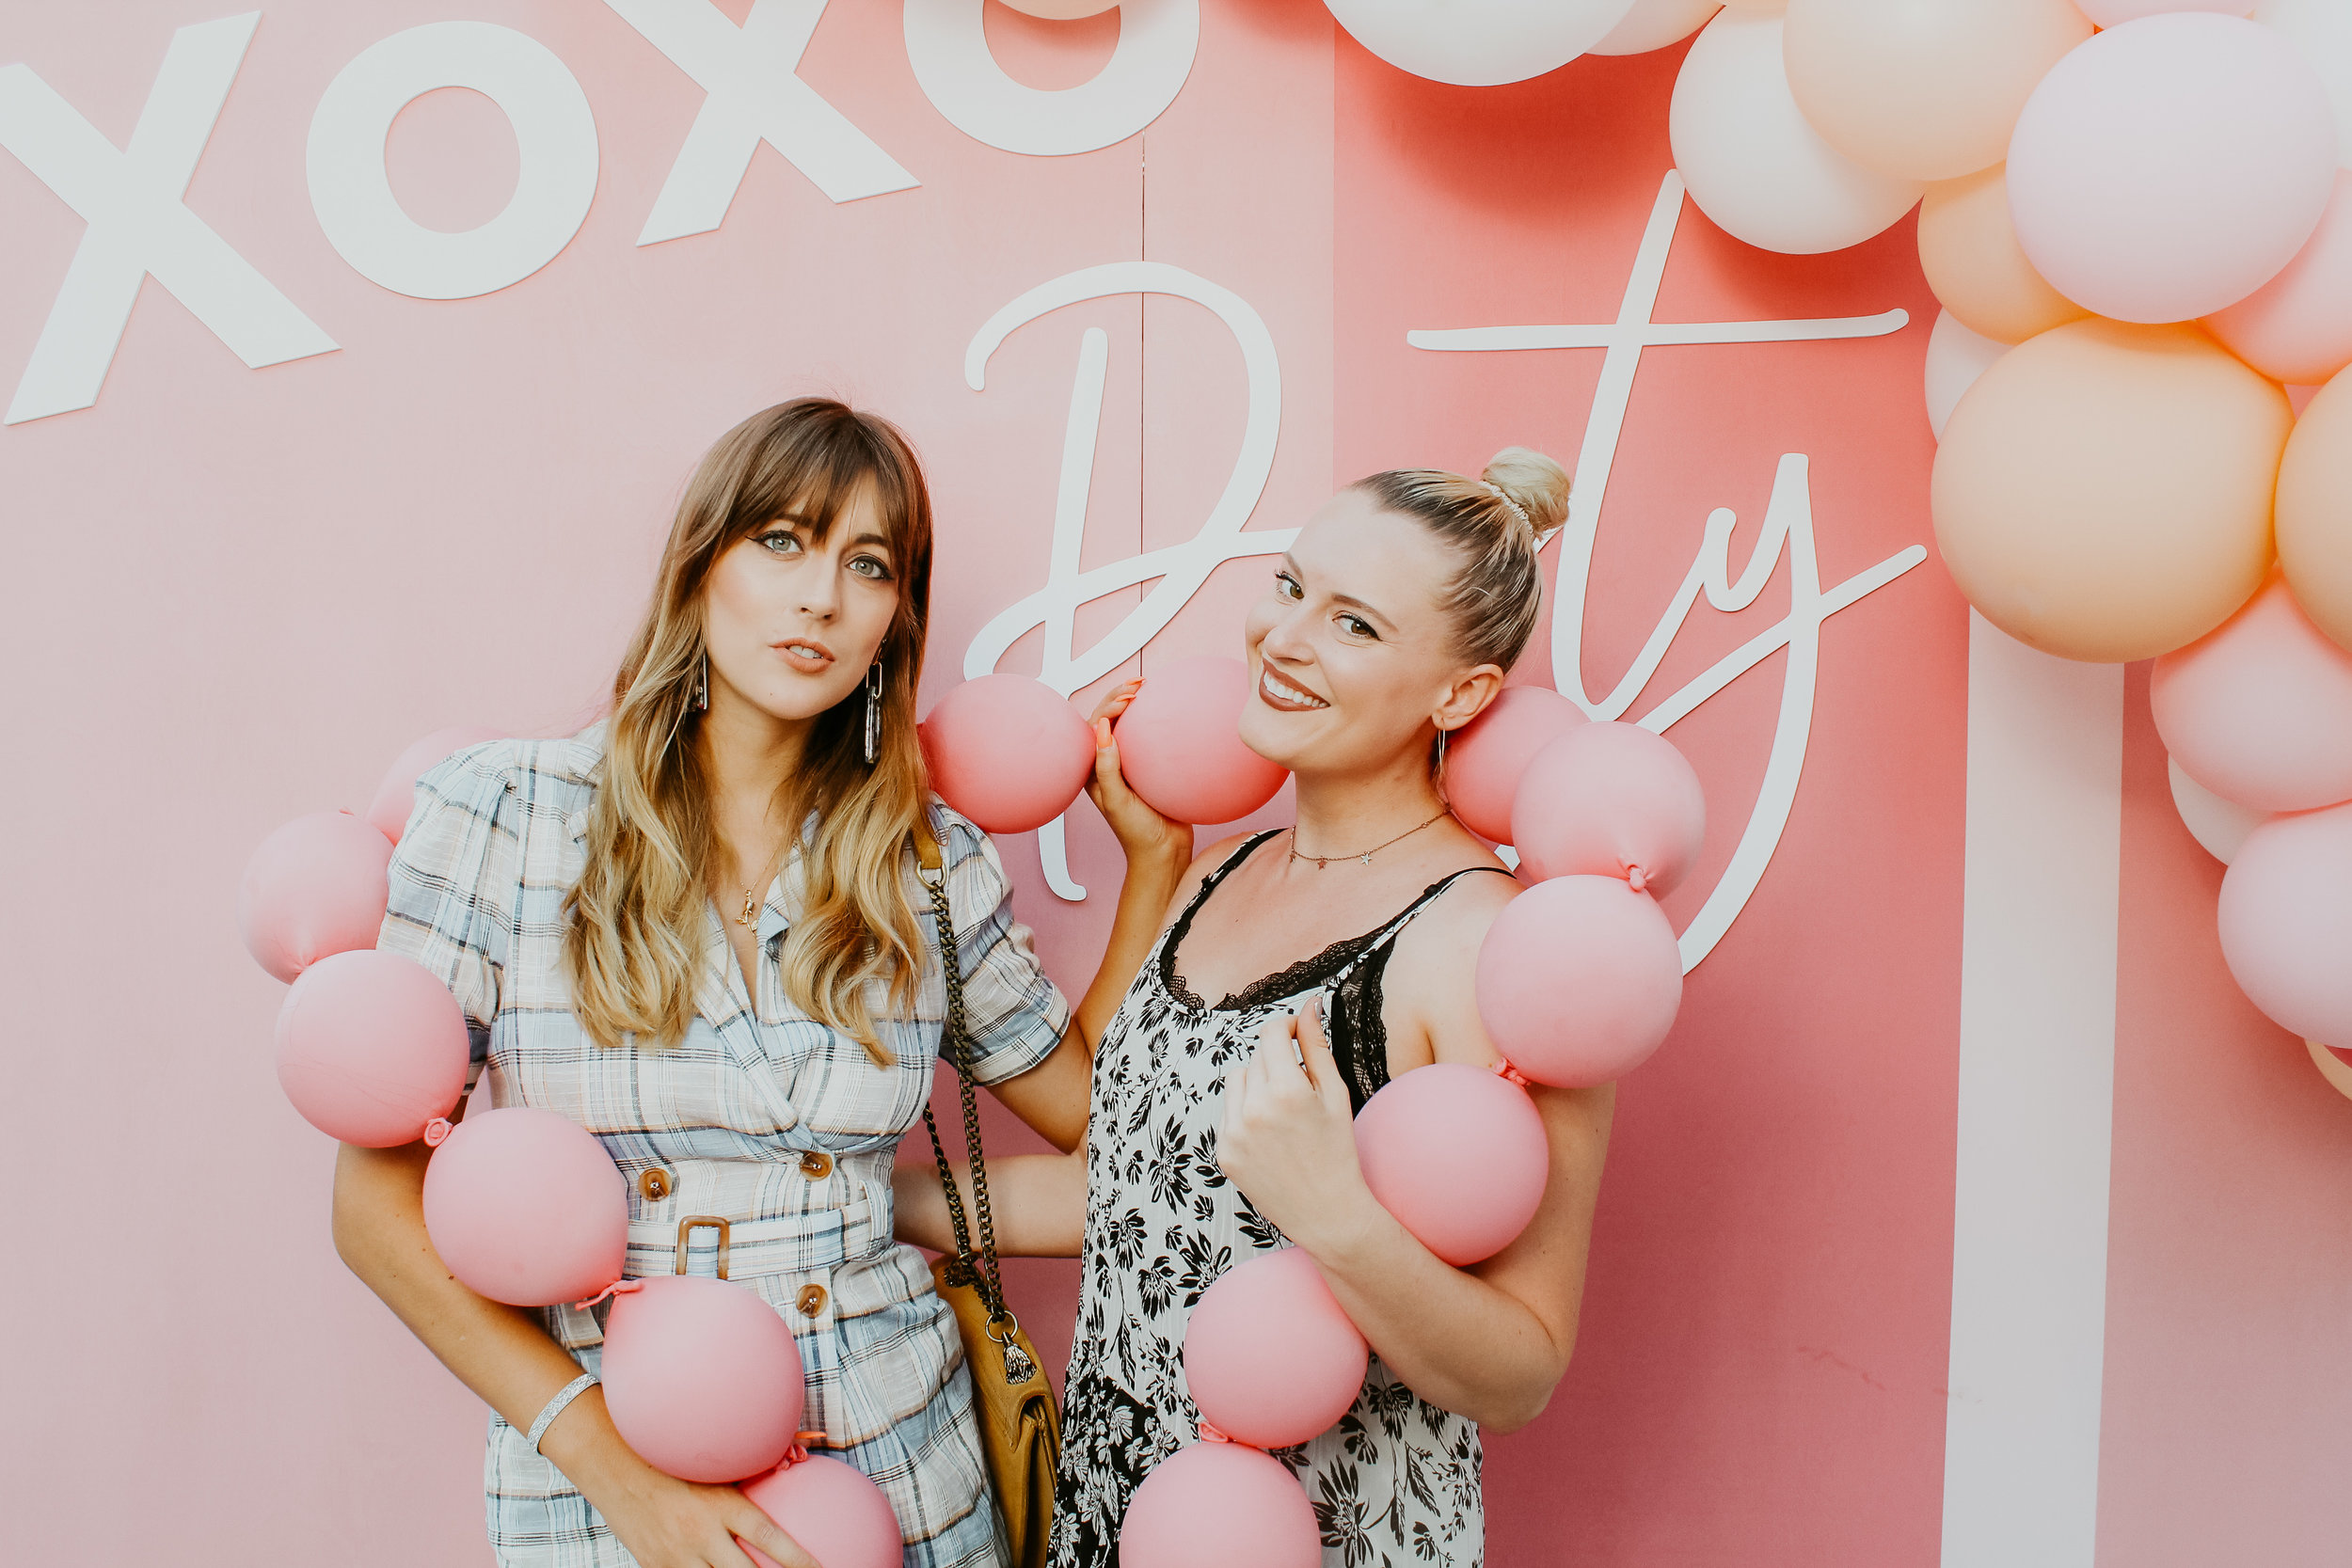 los angeles photo booth